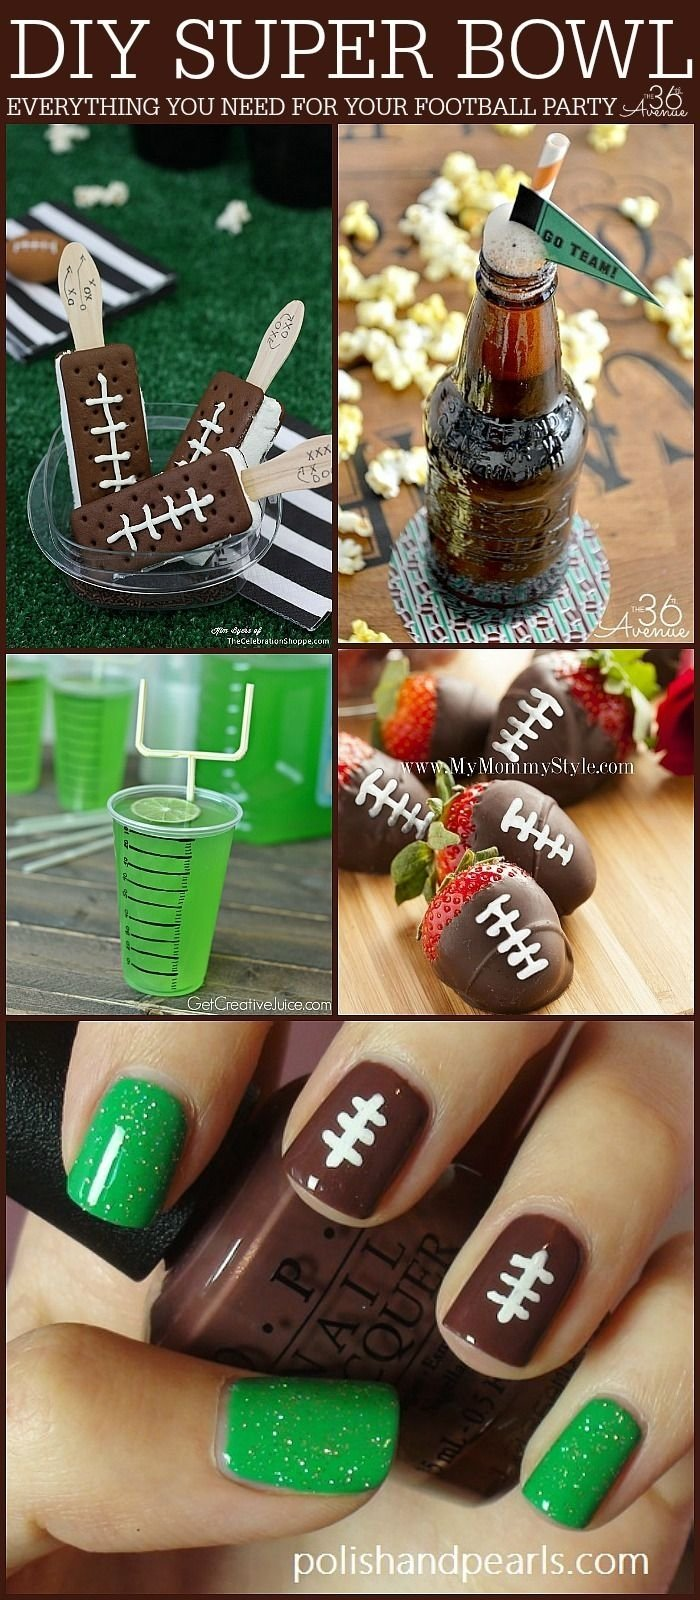 10 Amazing Super Bowl Party Decorating Ideas 186 best football super bowl sunday party ideas images on 2020